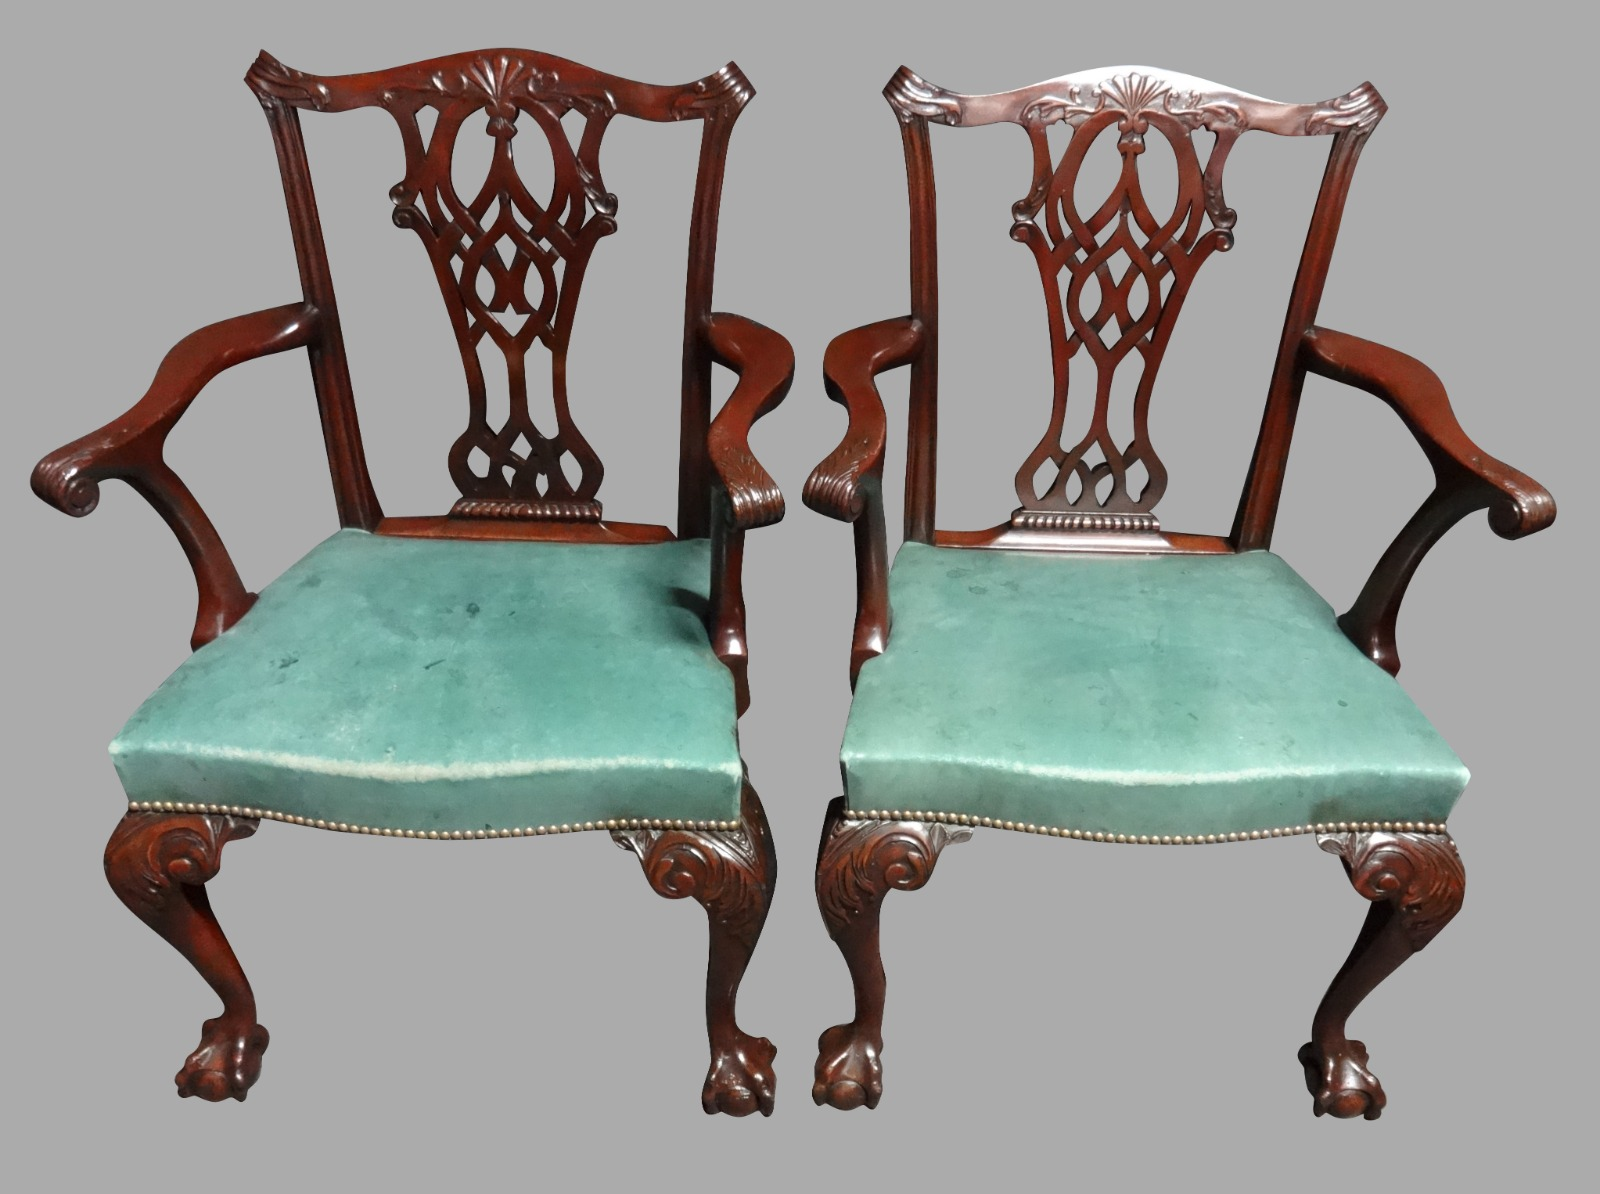 Good Pair of Mahogany Chippendale Carver Chairs (1 of 1)